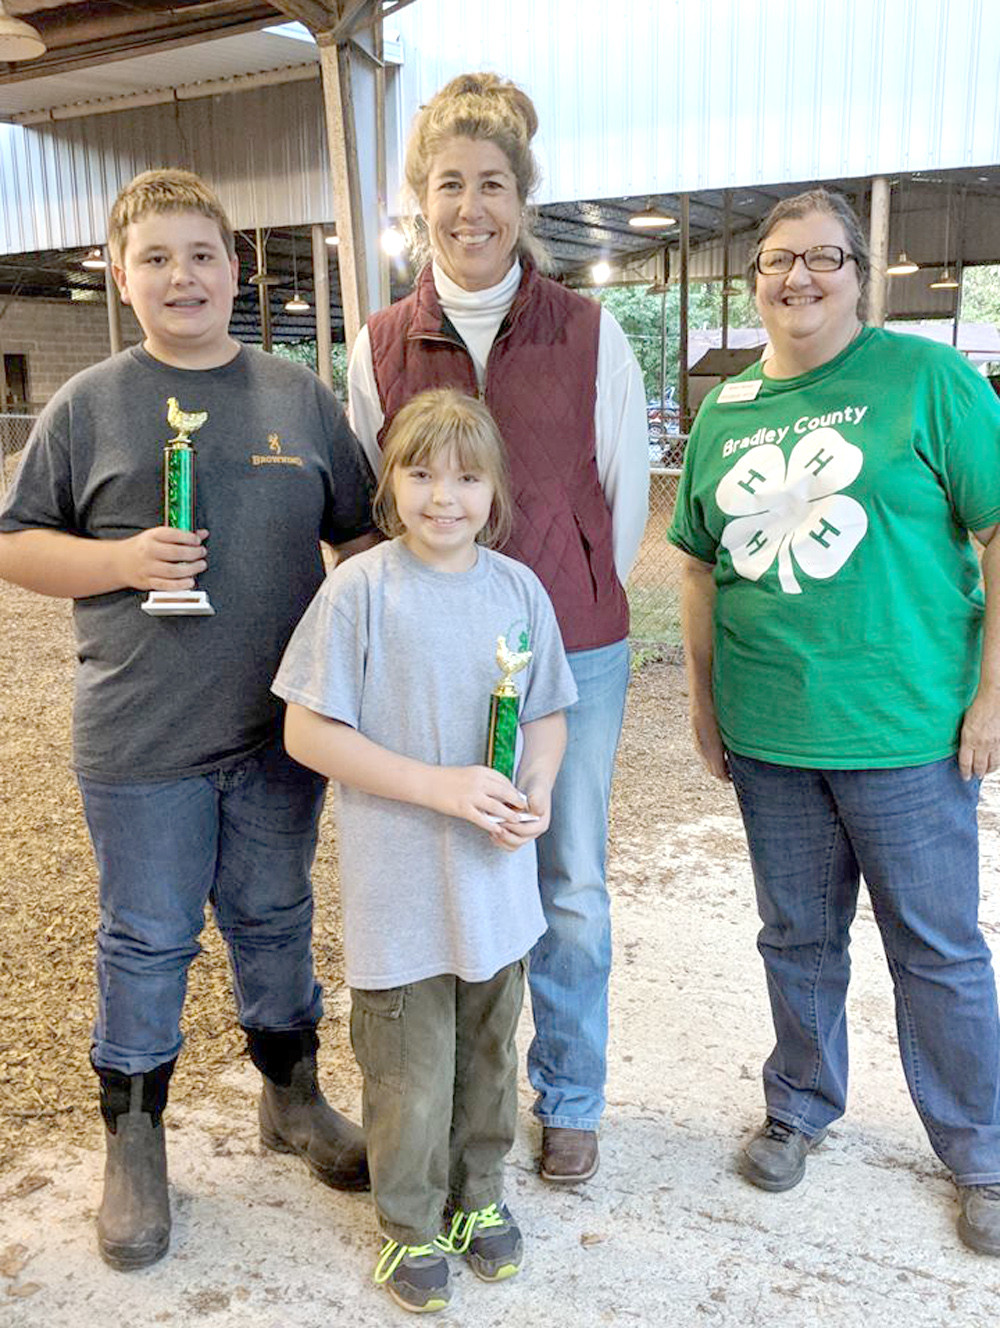 The Bradley County 4-H Poultry Show and Sale was held Oct. 26, at the William Hale Agricultural Center in Cleveland.  This year, 25 4-H members participated in the show.  The 4-H members each received 12 baby chicks from the 4-H Chick Chain Project in April and have been responsible for their care.  Each 4-H member brought three of their pullets to the show to compete for Grand Champion Pullet.  After the show, pullets were auctioned with the money going back into the 4-H Poultry Project. Brooke Bowman, Emily Casey, Alexander Caywood, Ben Caywood, Jaxon Chapman, Sarah Davis, Rose Duncan, Toby Duncil, Skyla Frankfort Goeringer, Brenden Guffey, Molly Kincaid, Brody Matthews, Brady Montgomery, Olivia Pass, Madison Perry, Fredrick Rackel, Avery Rayburn, Jackson Ryerson, Alanna Scoggins, Zane Shope, Caleb Tuinstra, Abby White, Eden Wills, Bella Salazar and Megan Salazar.  Shope and the Reserve Grand Champion Pullet winner was Sarah Davis.  Judge for this year's show was Julie Johnson from Roane County and the auctioneer was Joe Stepp.